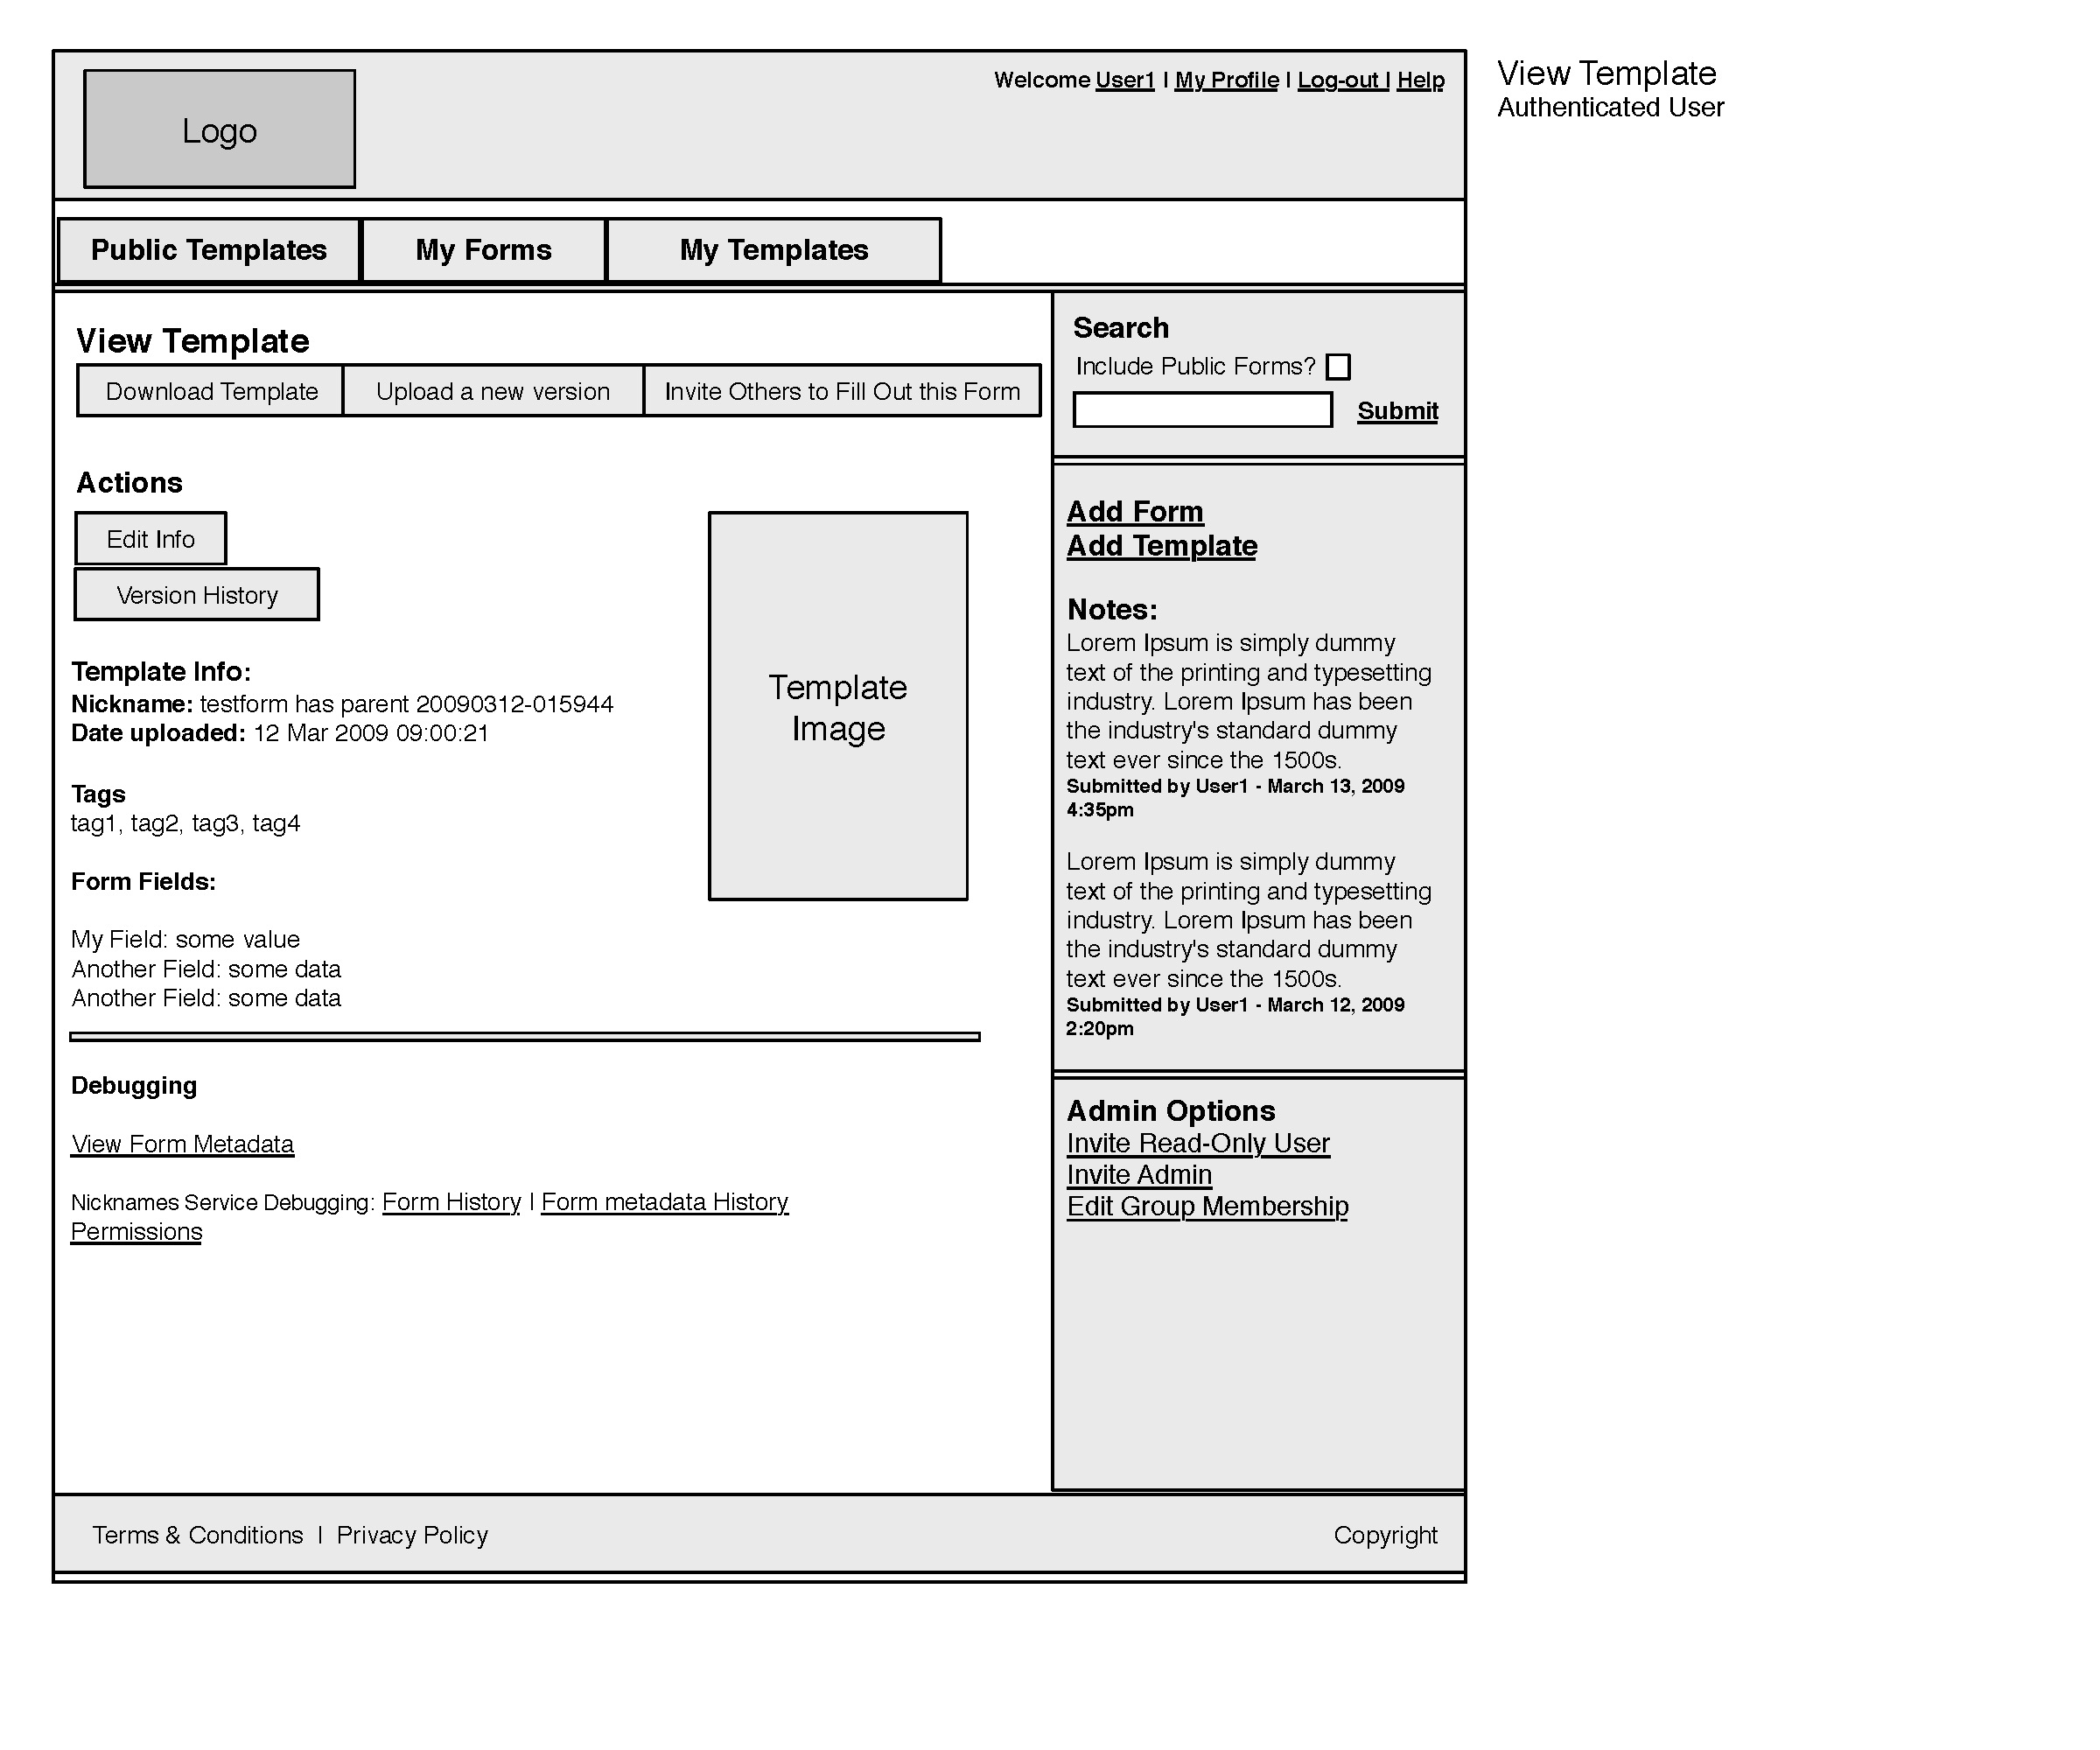 ricoh-ia-sitemap-wireframes_Page_14.png